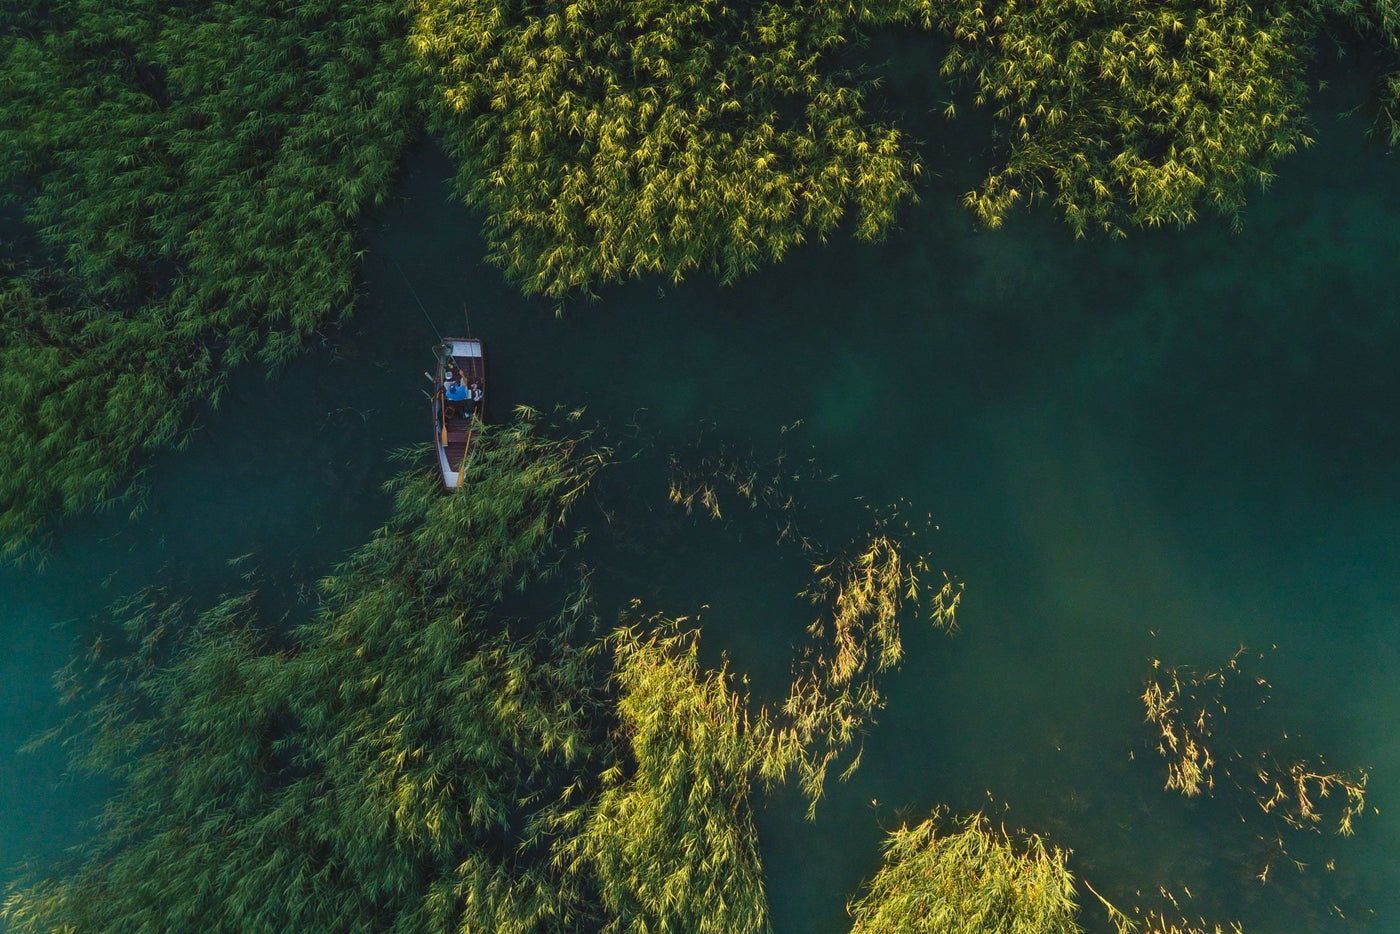 Aerial view of river and green forest